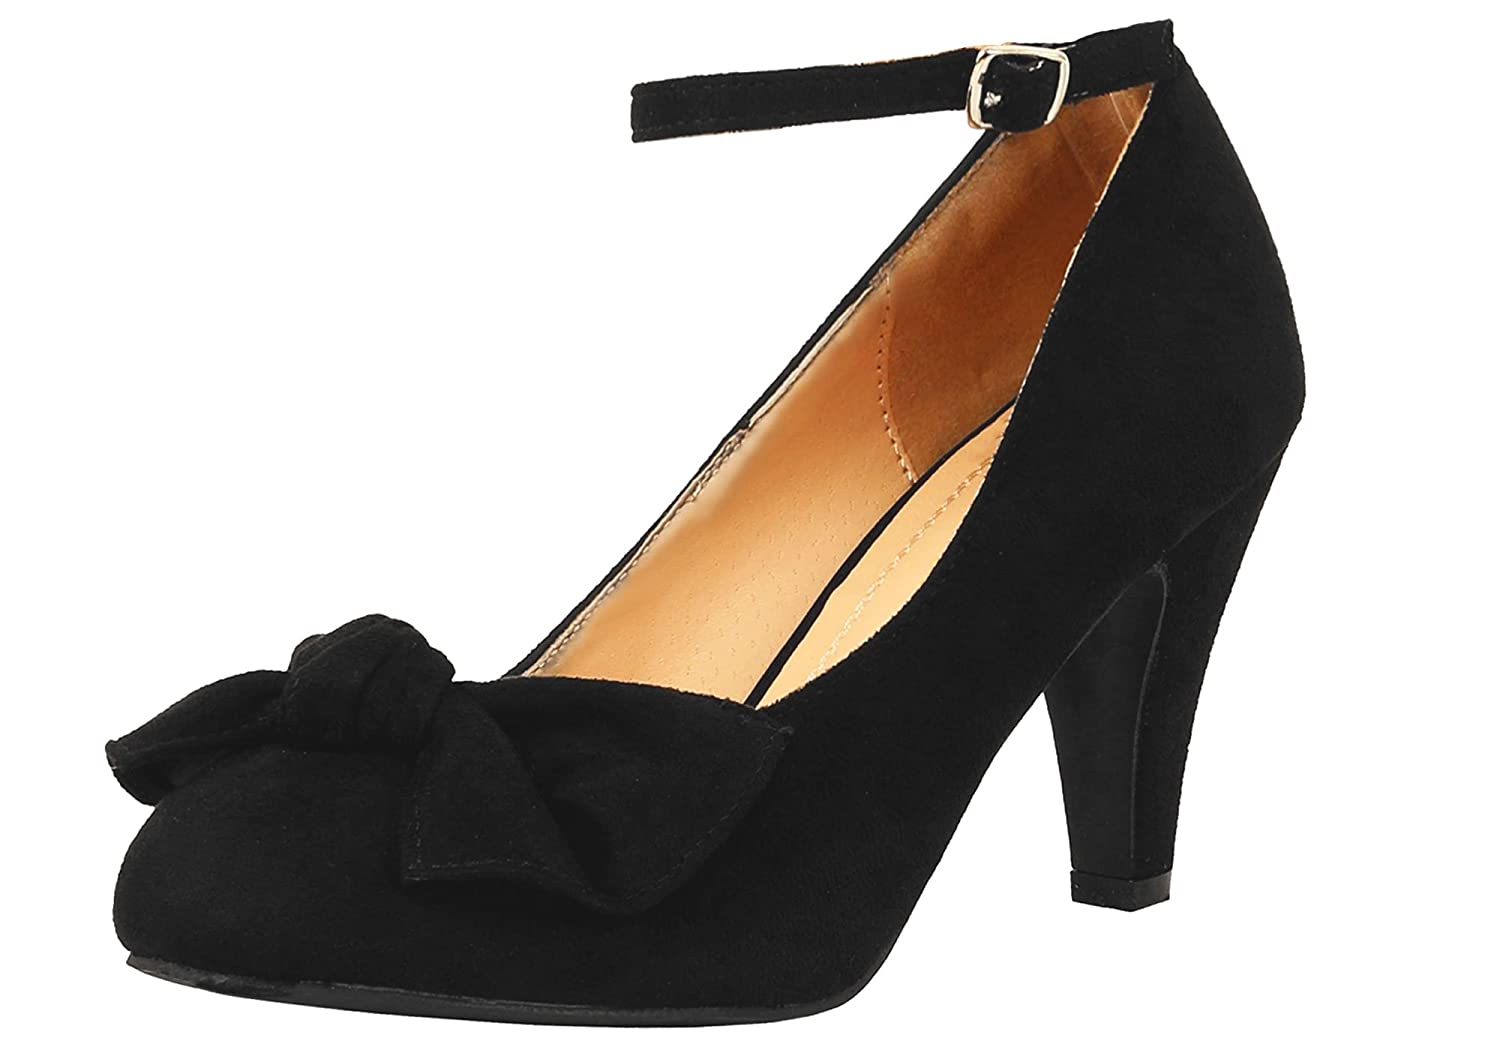 Pin Up Shoes- Heels, Pumps & Flats Chase & Chloe Women's Retro Kimmy-67 Bow Front Faux Suede Mary-Jane Pumps $39.89 AT vintagedancer.com